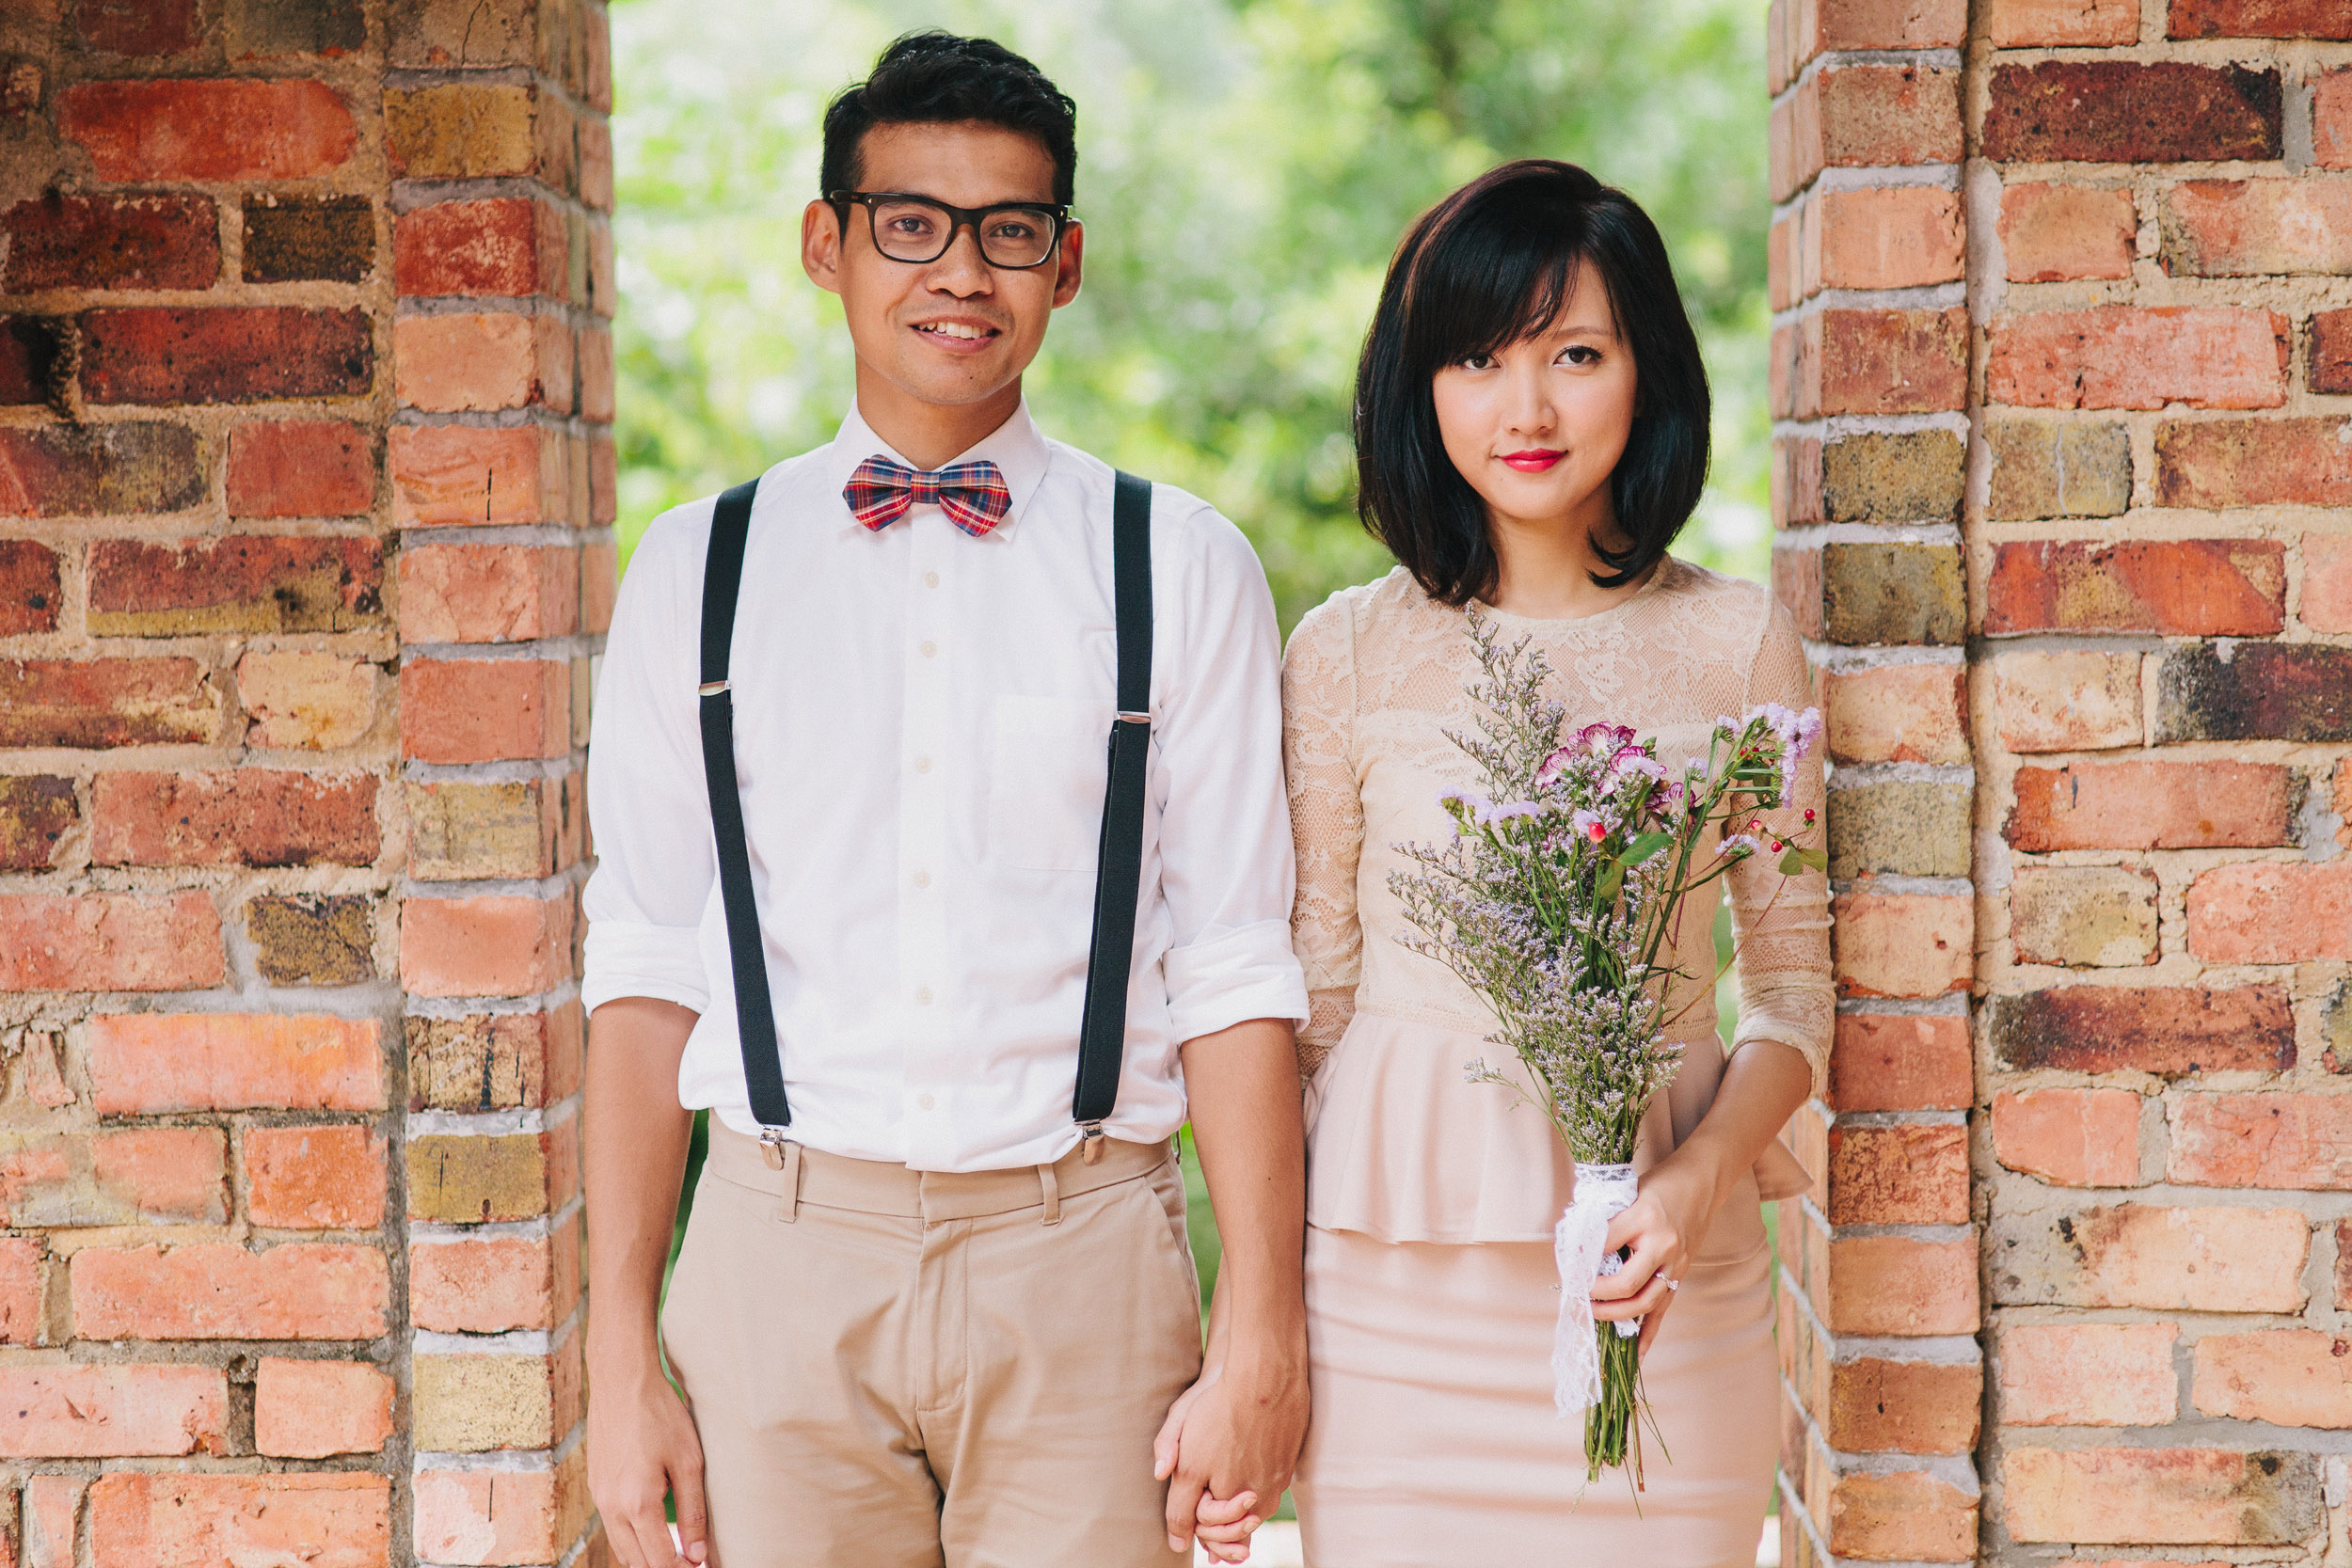 singapore-wedding-photographer-wemadethese-adib-mizah-2012-sessions-018.jpg